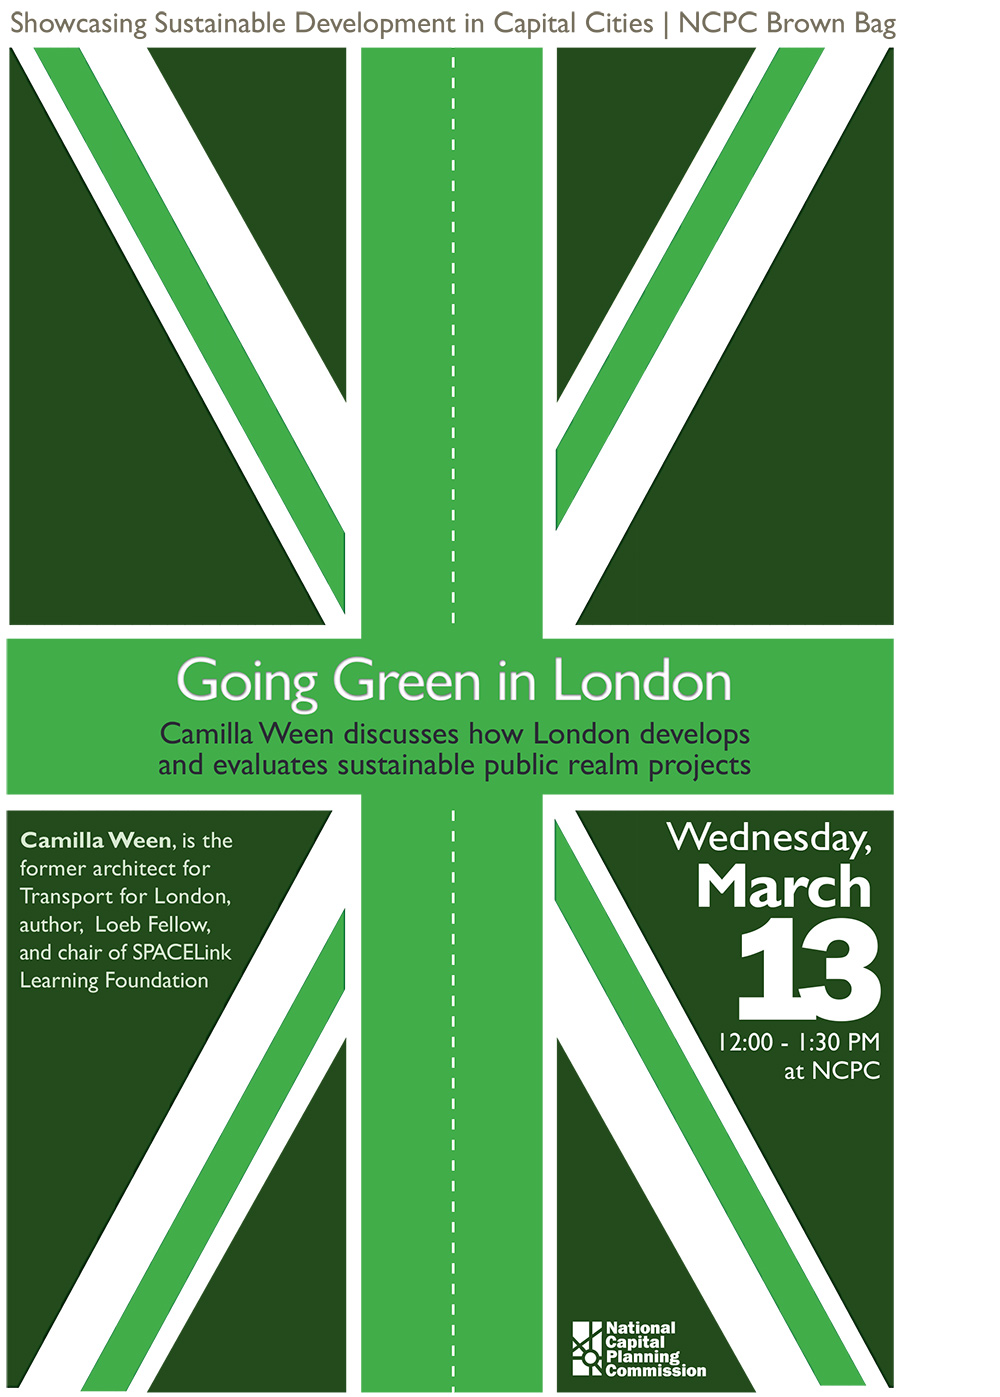 lectures-6-ncpc1-dc-poster-camillaween_goinggreen